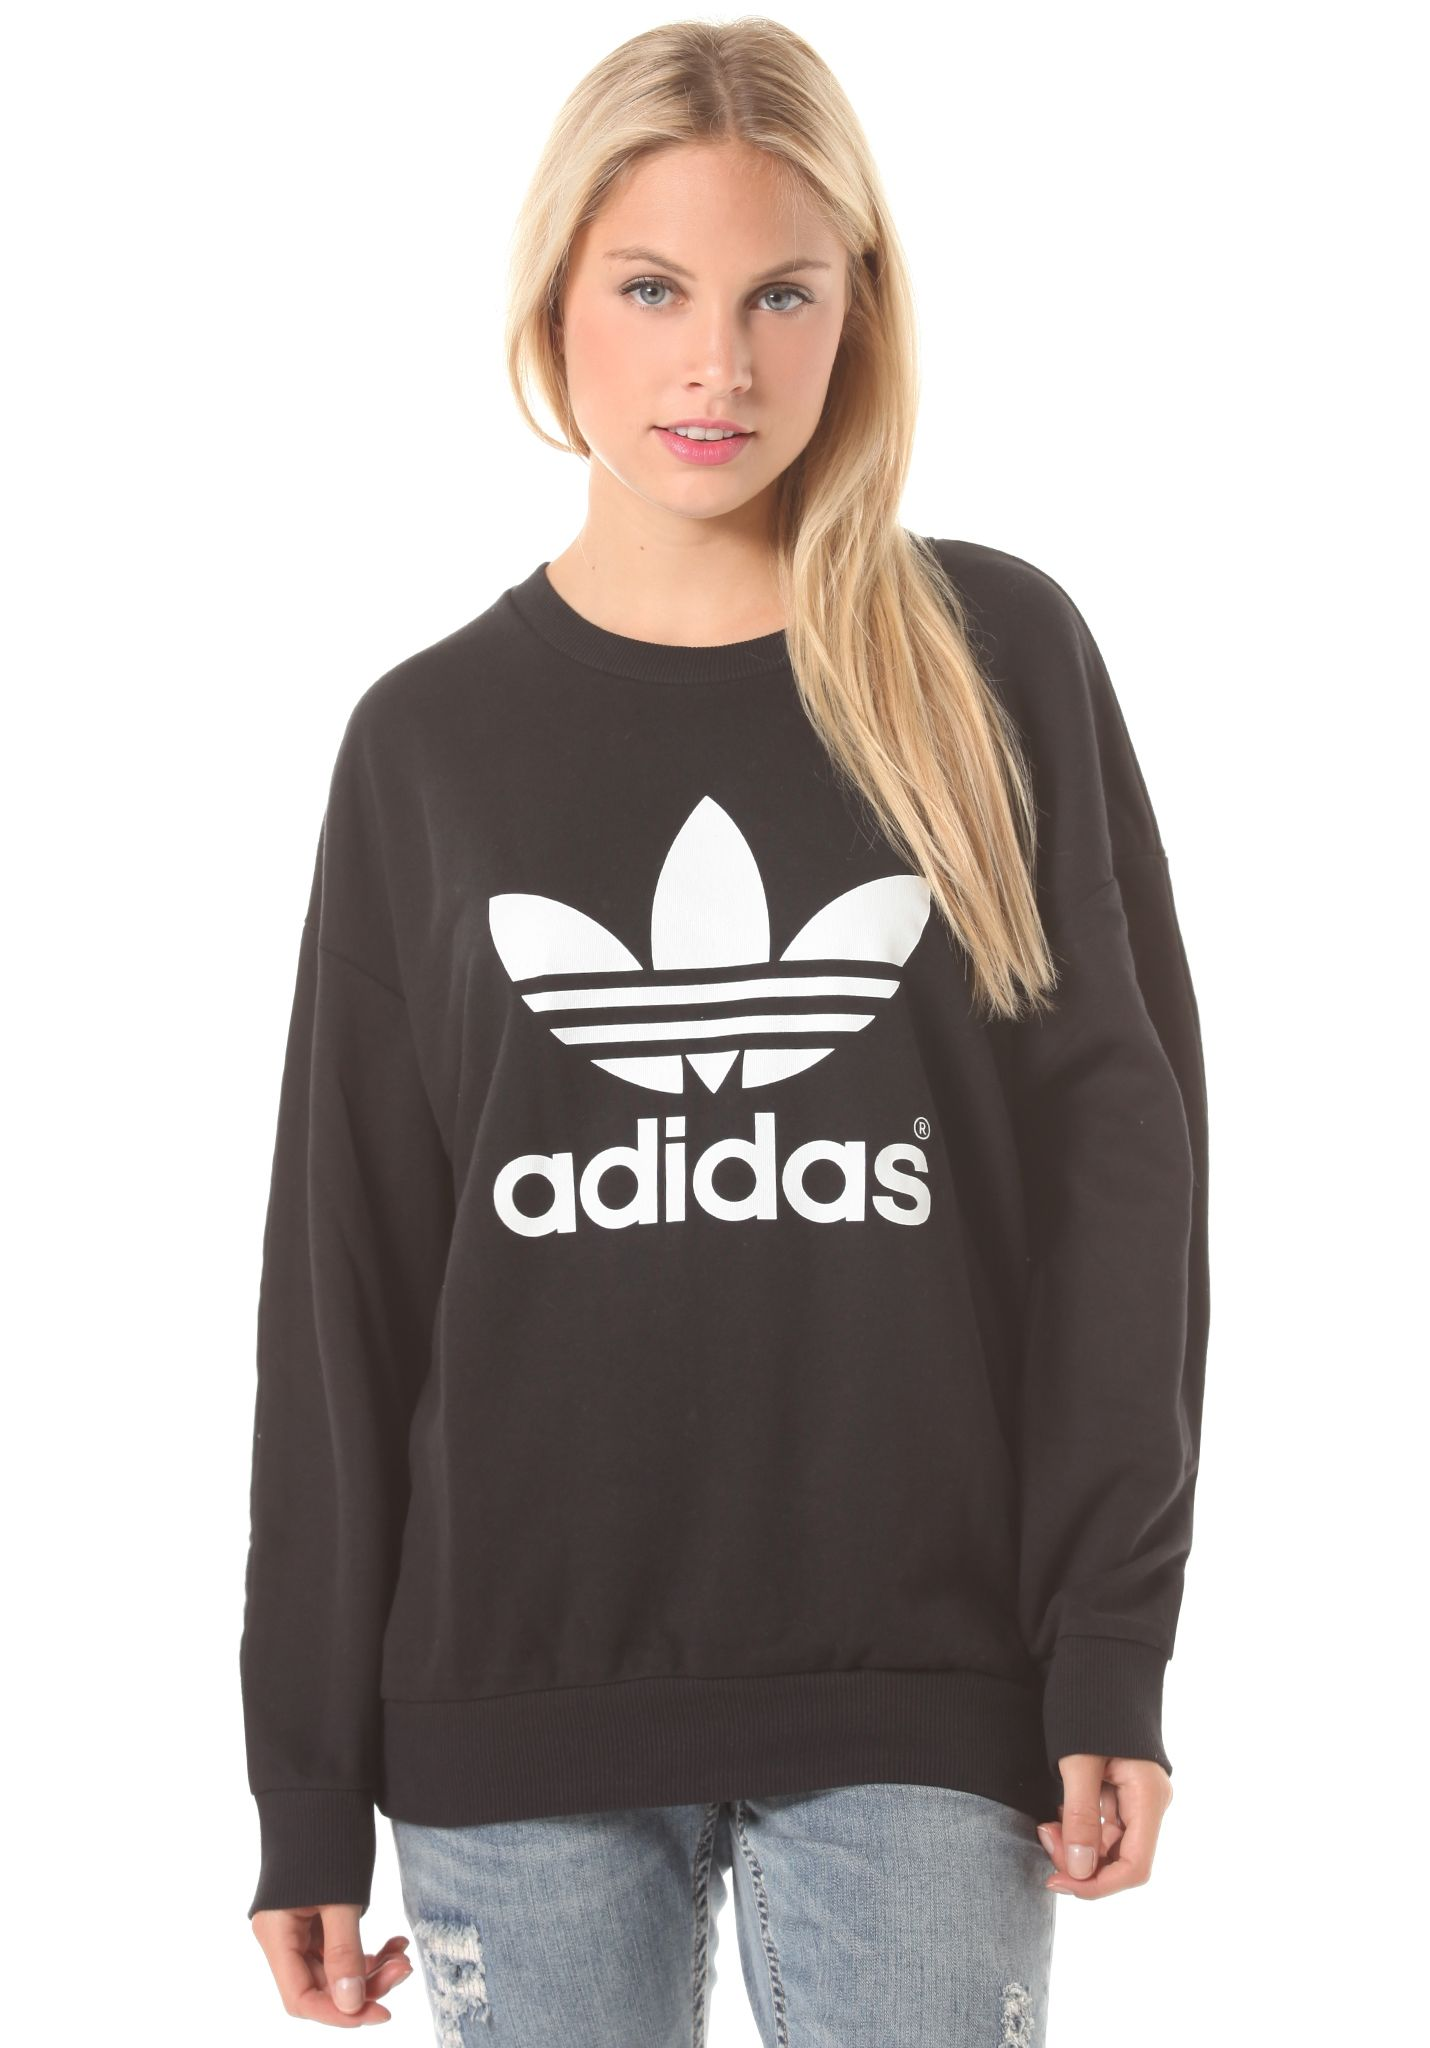 womens black adidas sweatshirt,kids adidas shoes online